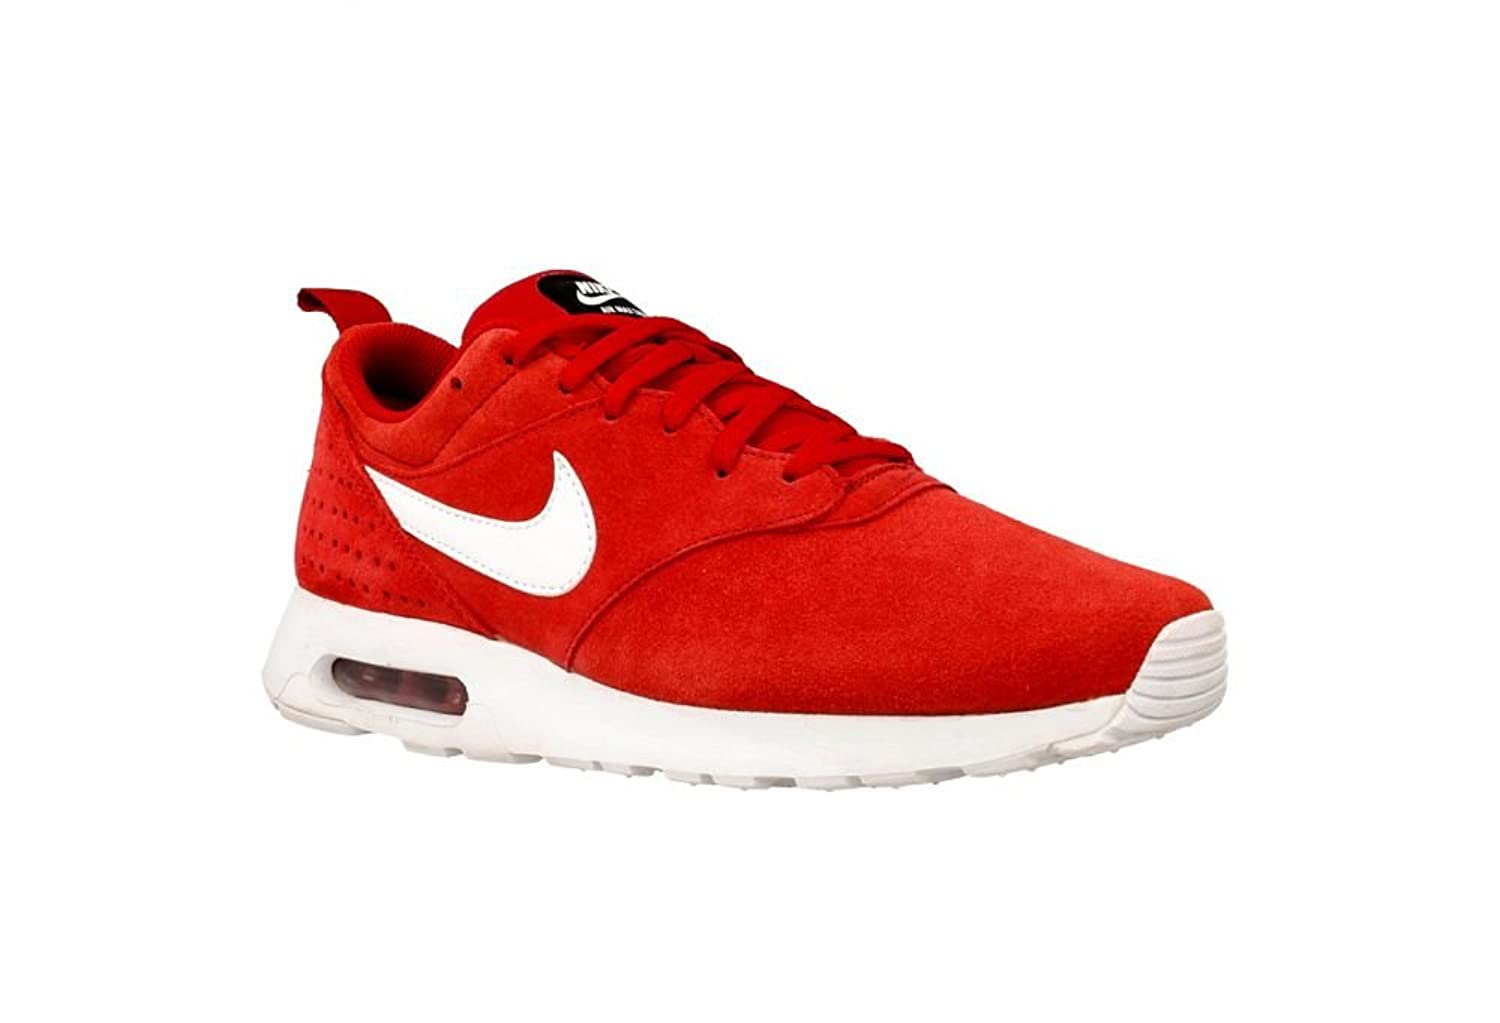 73b6ac0ee2f3 cheap nike air max tavas LTR mens trainers 802611 sneakers shoes ...